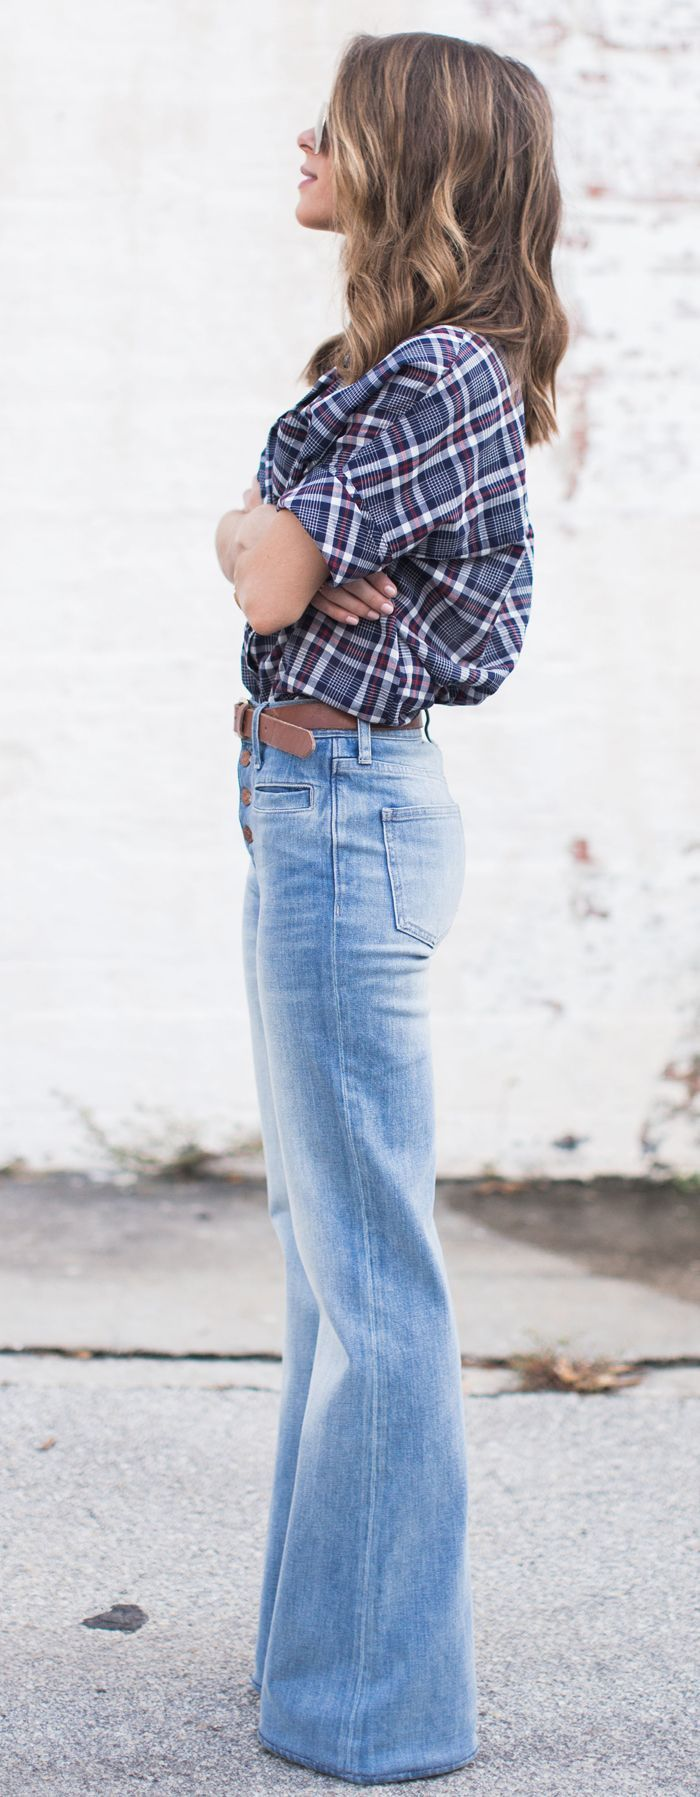 Flares jeans with plaid shirt. 70s fashion trend. Outfit to copy. Stylish look.